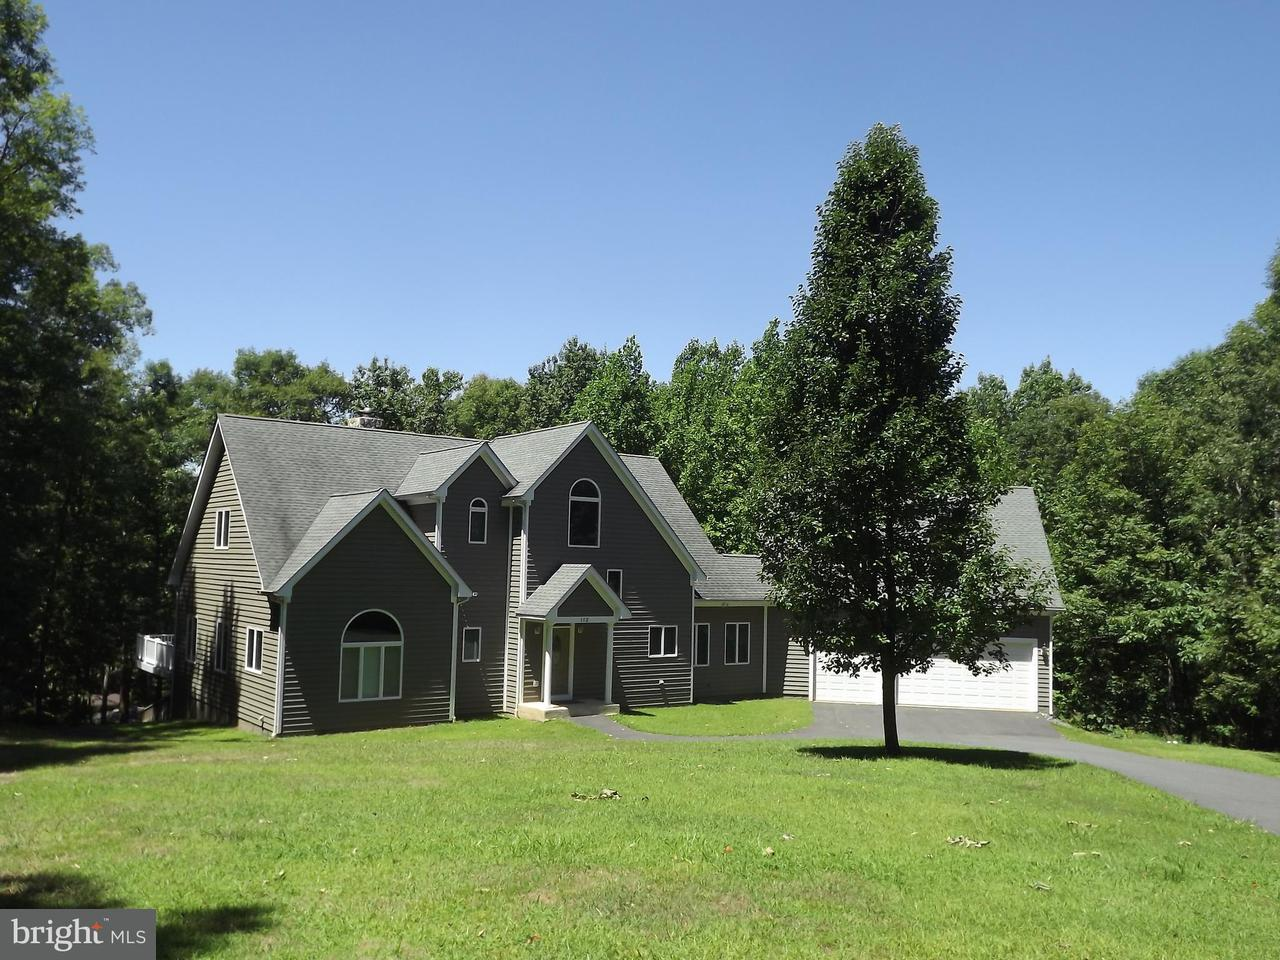 Single Family Home for Sale at 102 TOBYS RUN 102 TOBYS RUN Mineral, Virginia 23117 United States